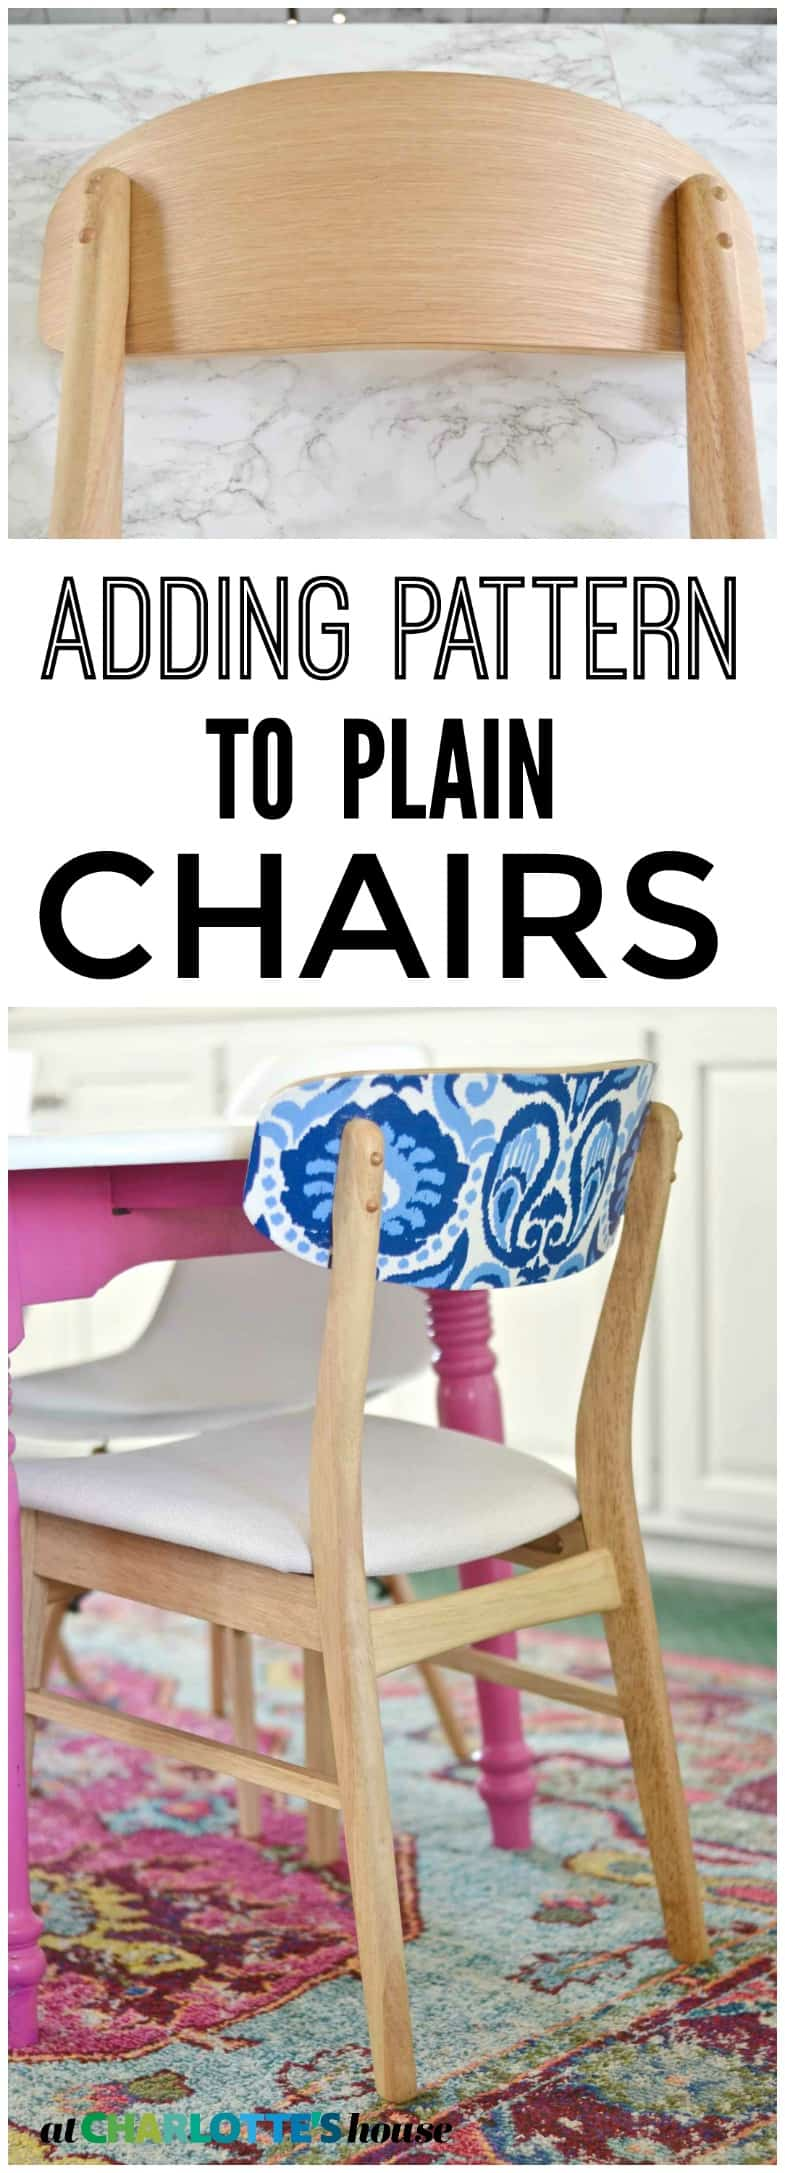 how to update kitchen chairs with FABRIC!